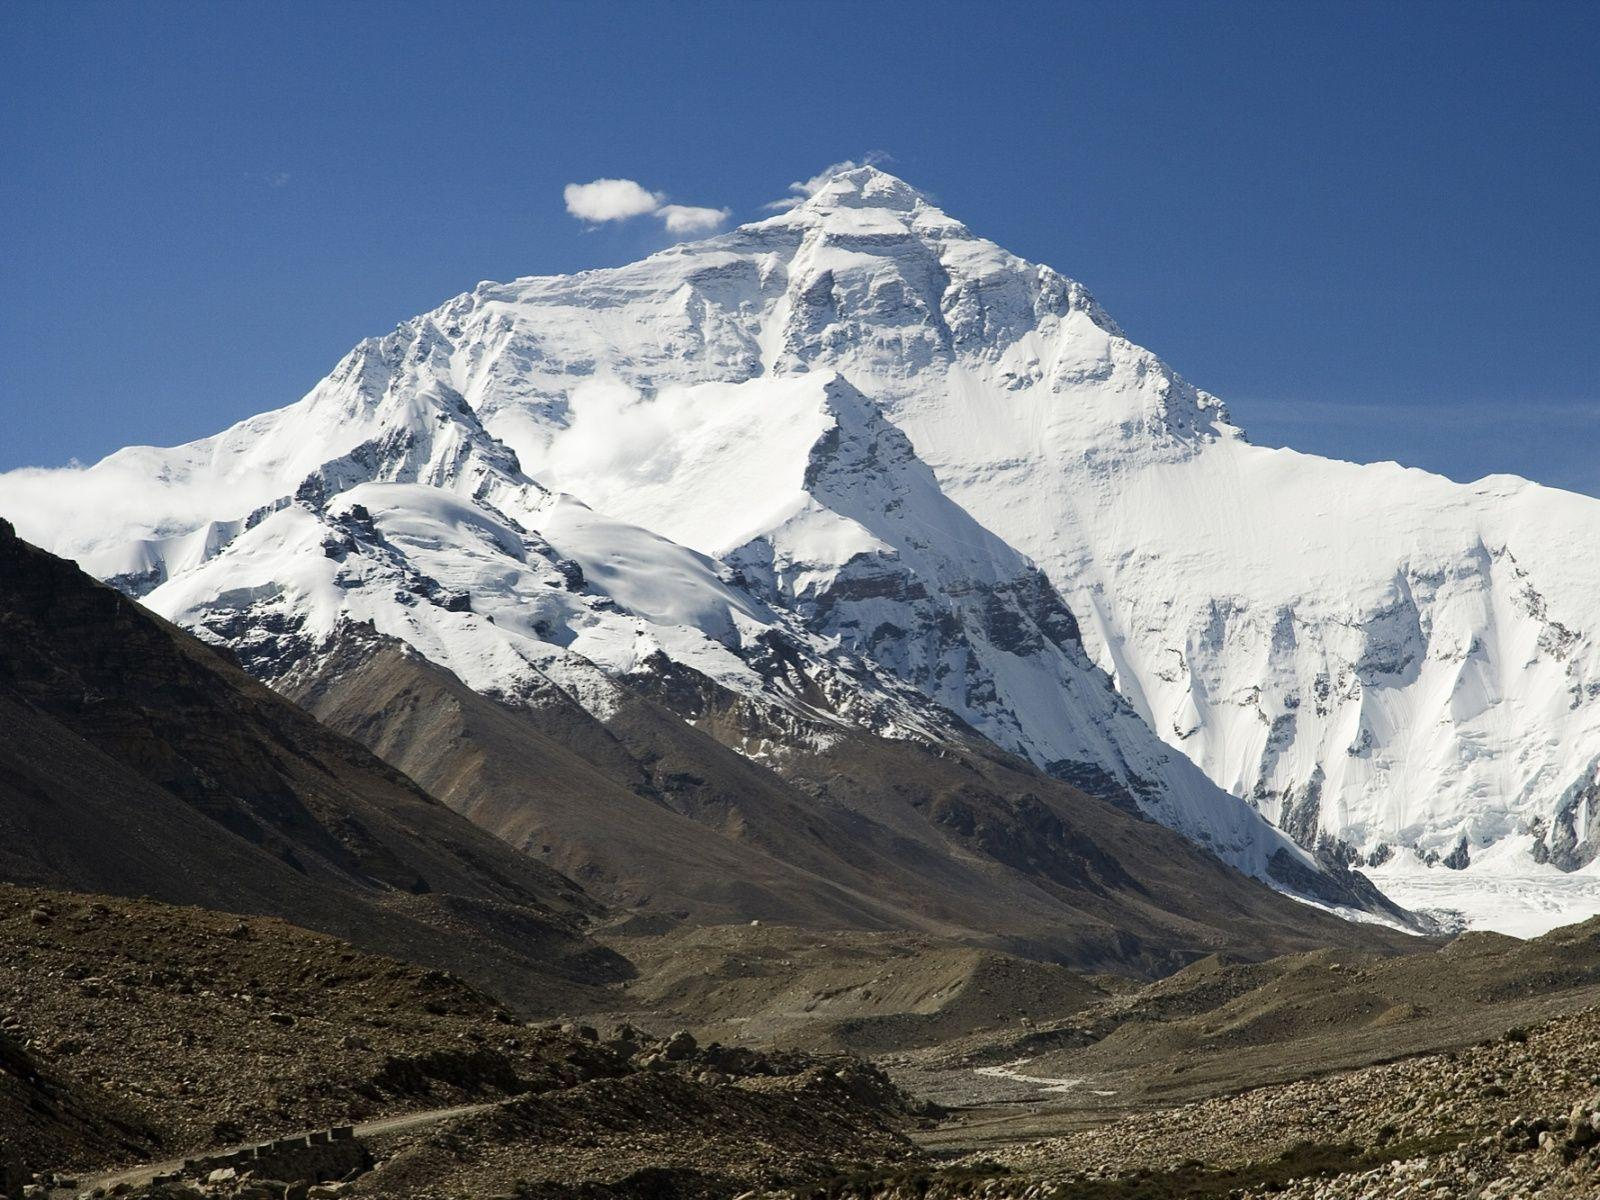 Top Wallpapers » Wallpapers » Mount Everest